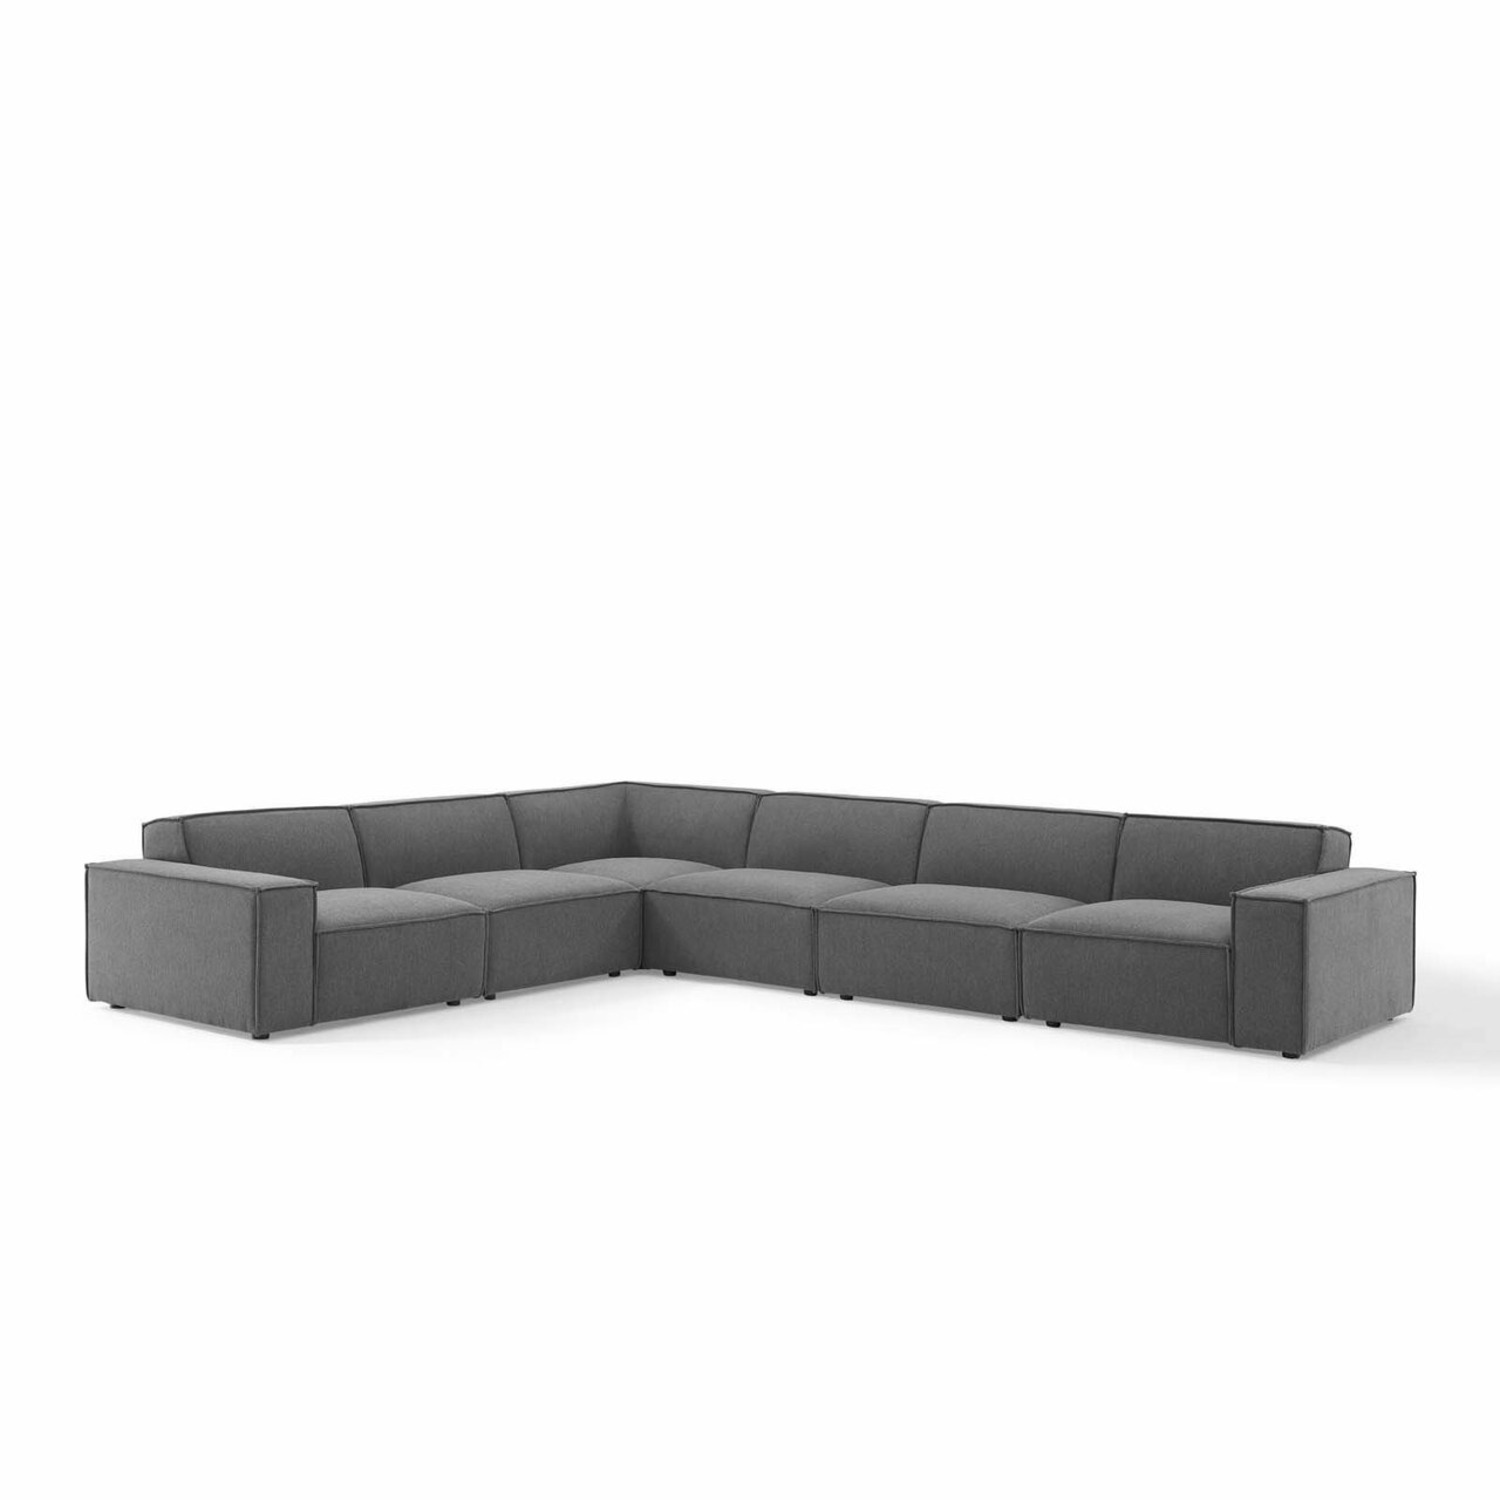 6Piece Sectional Sofa In Charcoal Polyester Fabric - image-0